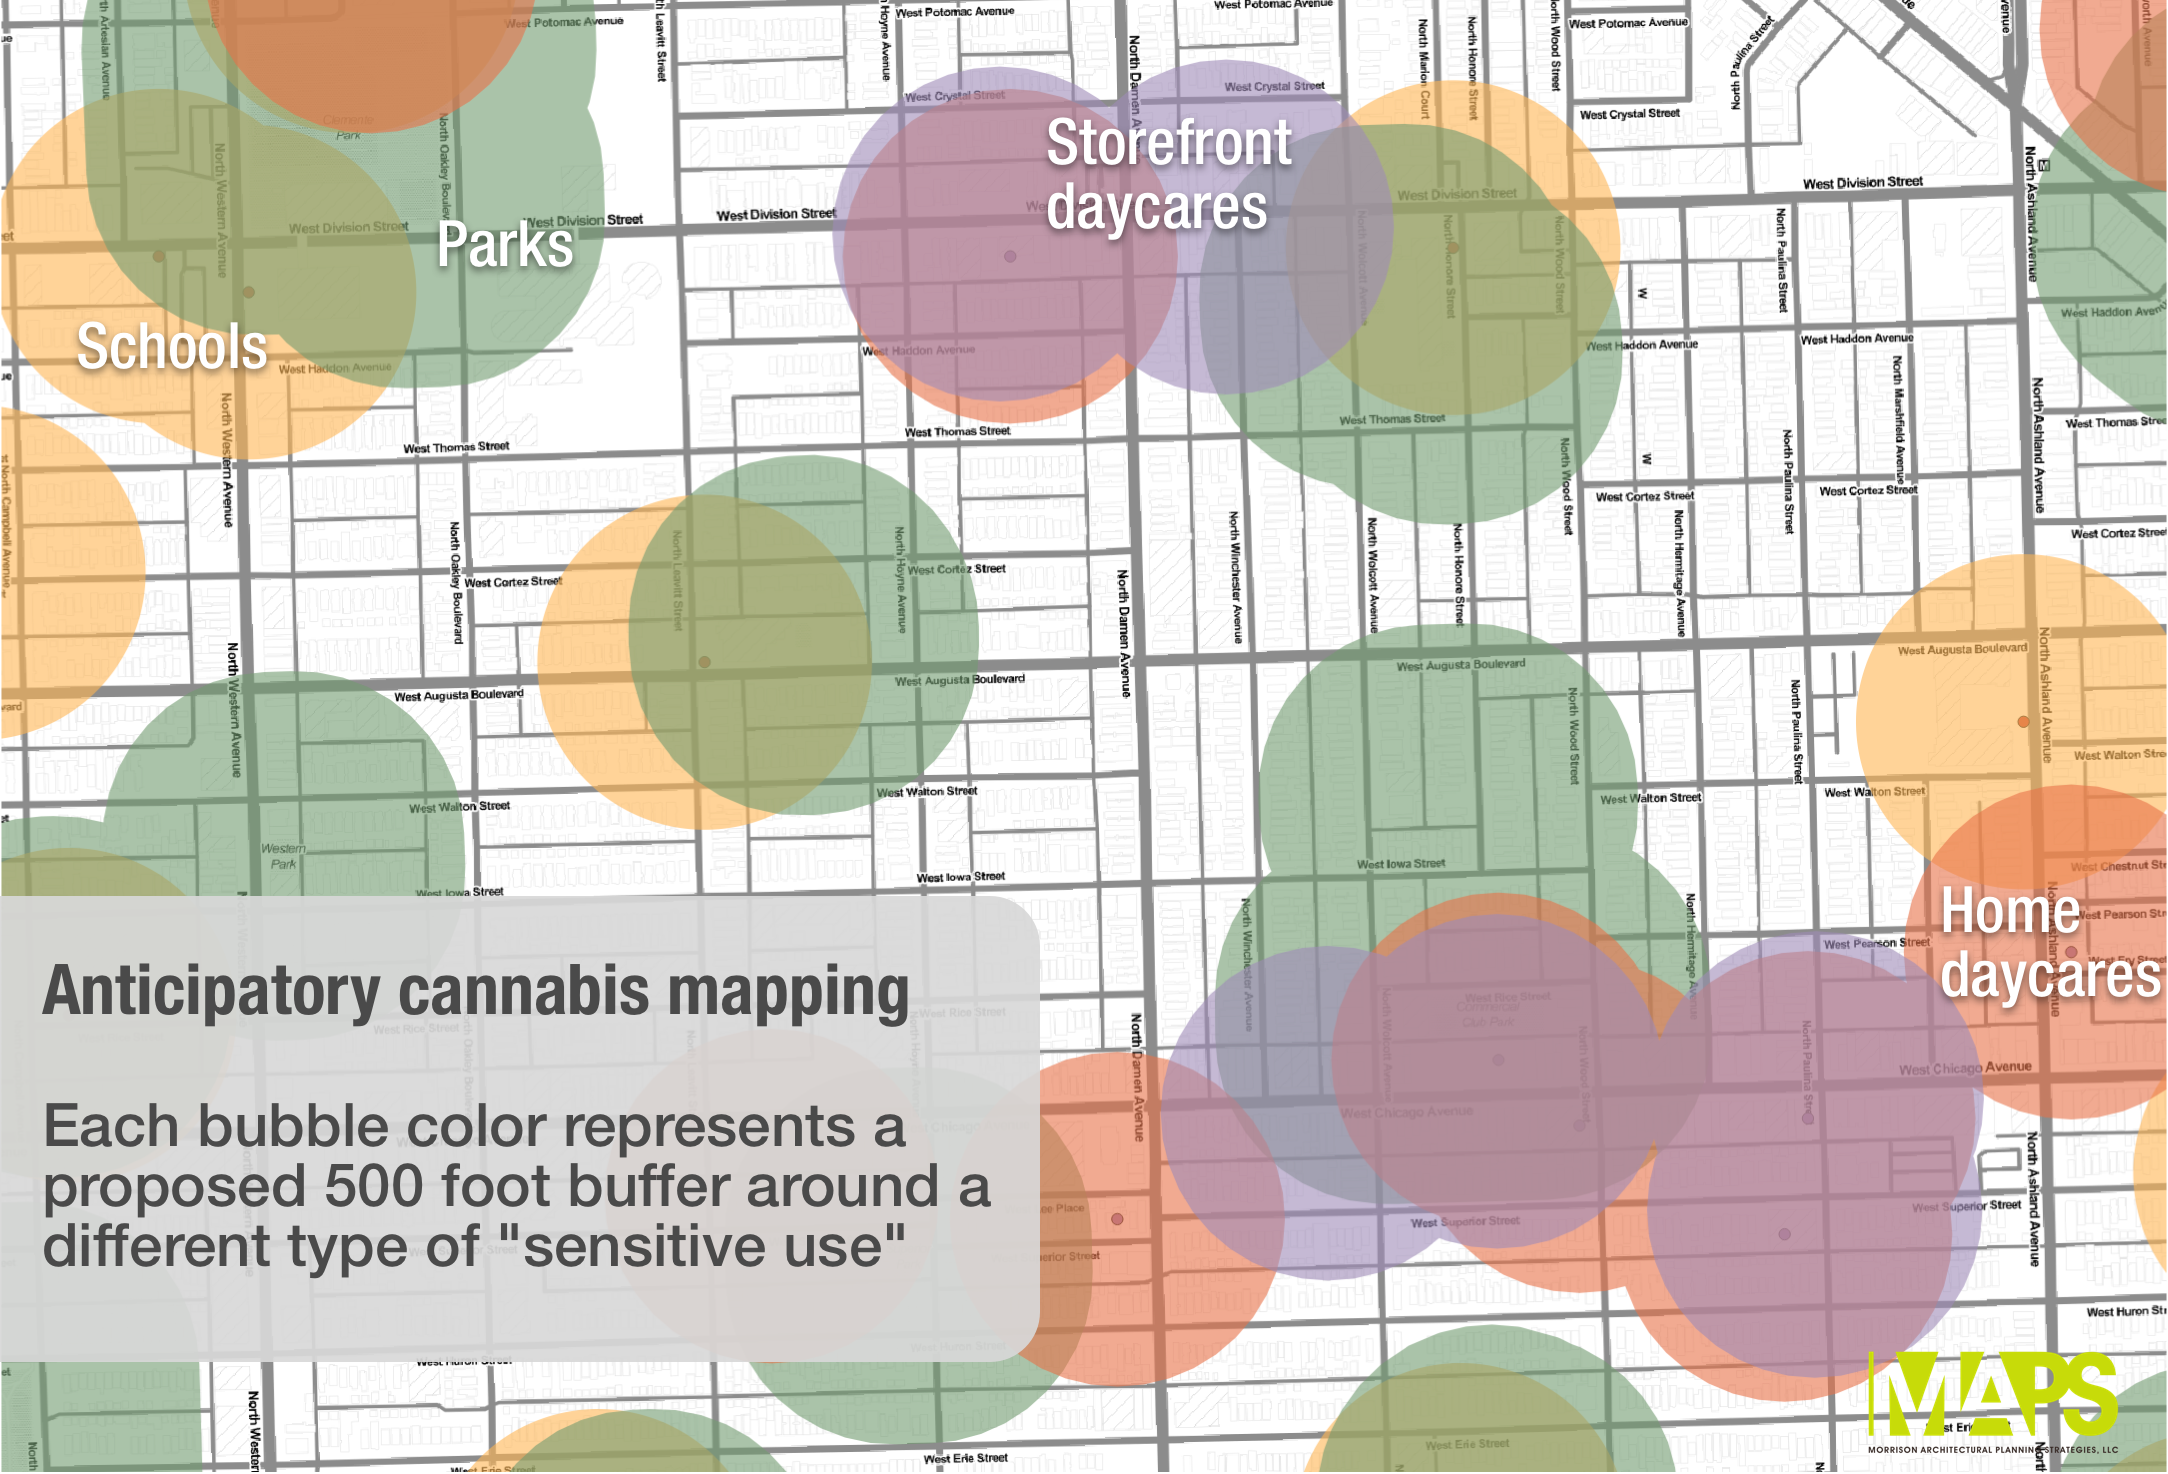 Bubbles represent a 500 foot buffer around known locations of sensitive uses, including parks and playgrounds. Eligible Chicago zoning districts are not shown because they haven't been established to allow recreational cannabis uses.